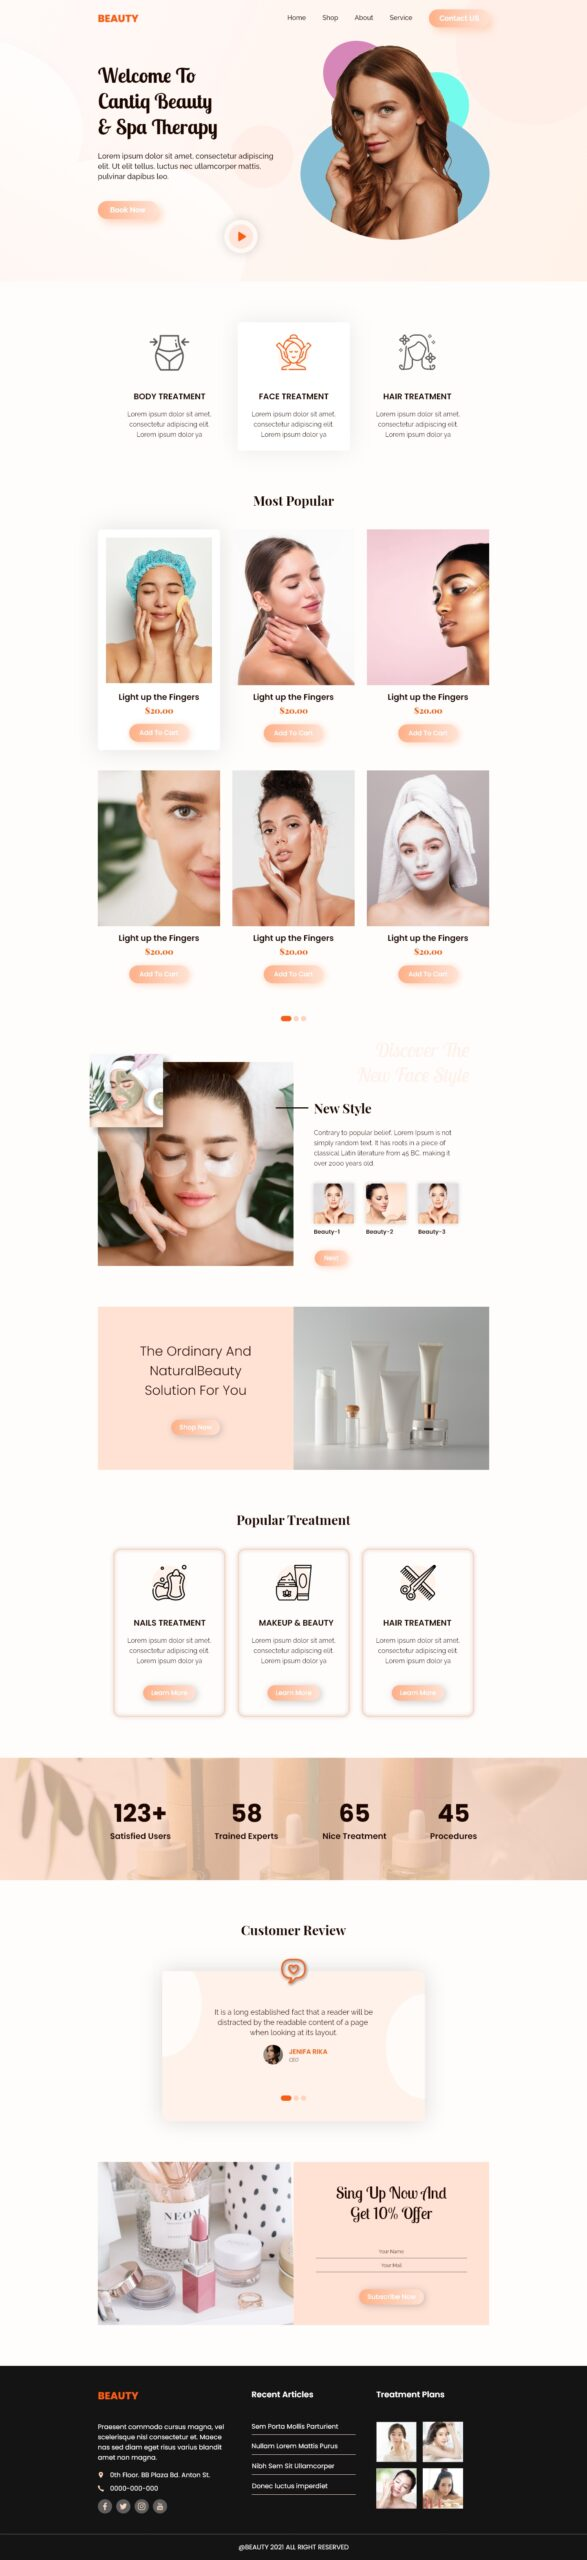 Makeup And Beauty Landing Page